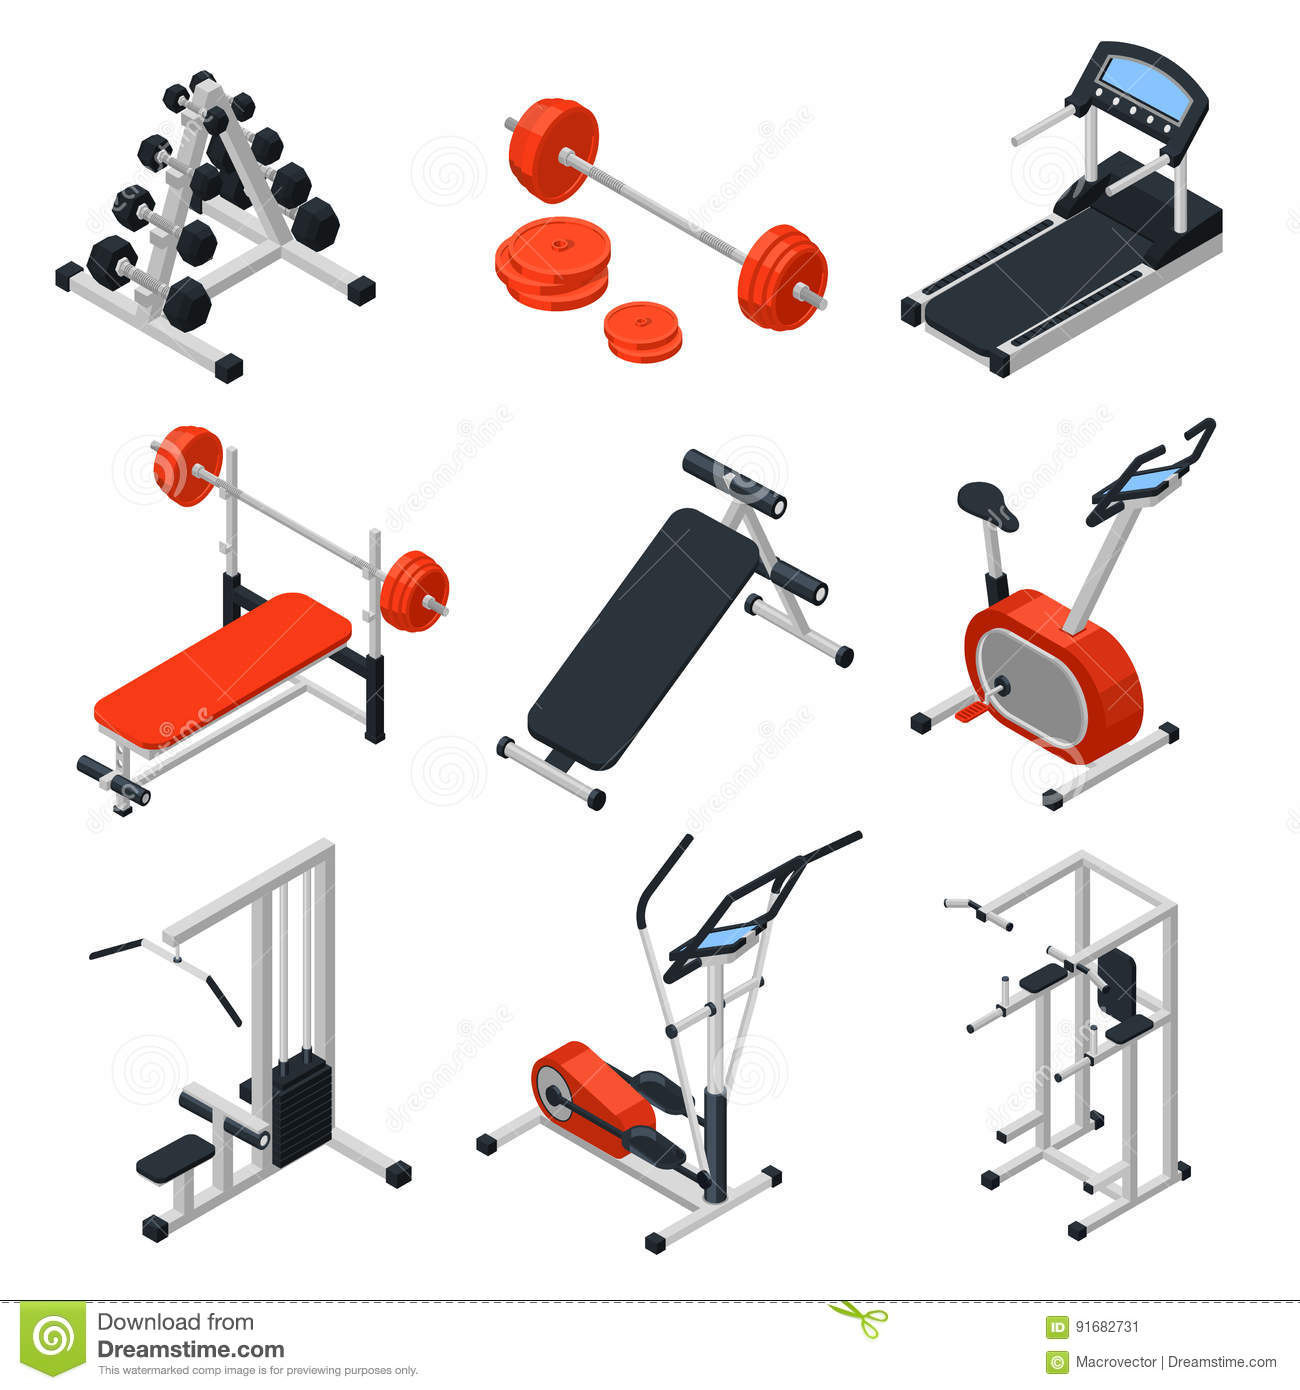 Isometric Exercises Equipment: Crossfit Cartoons, Illustrations & Vector Stock Images